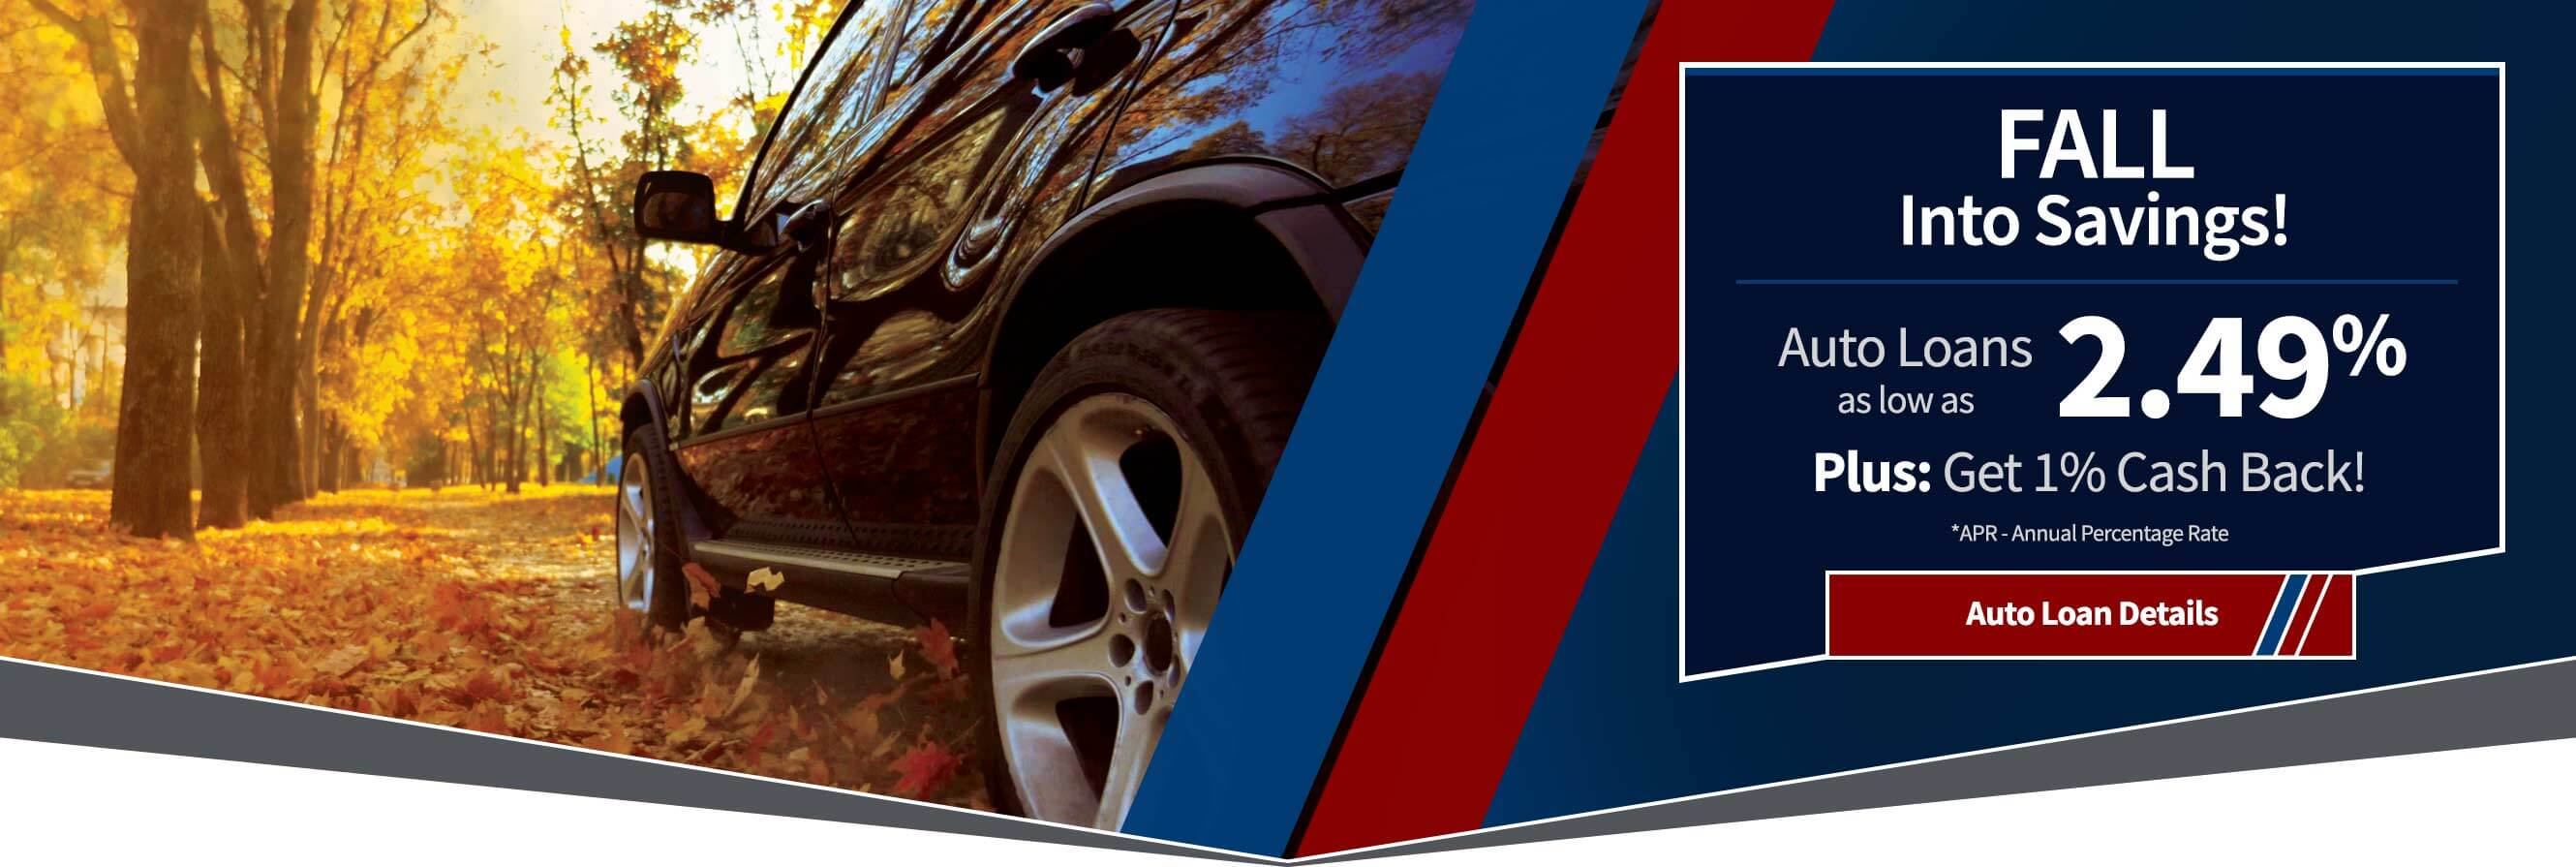 All into savings with auto loans as low as 2.49% plus get 1% cash back.  APR = annual percentage rate.  Auto Loan details